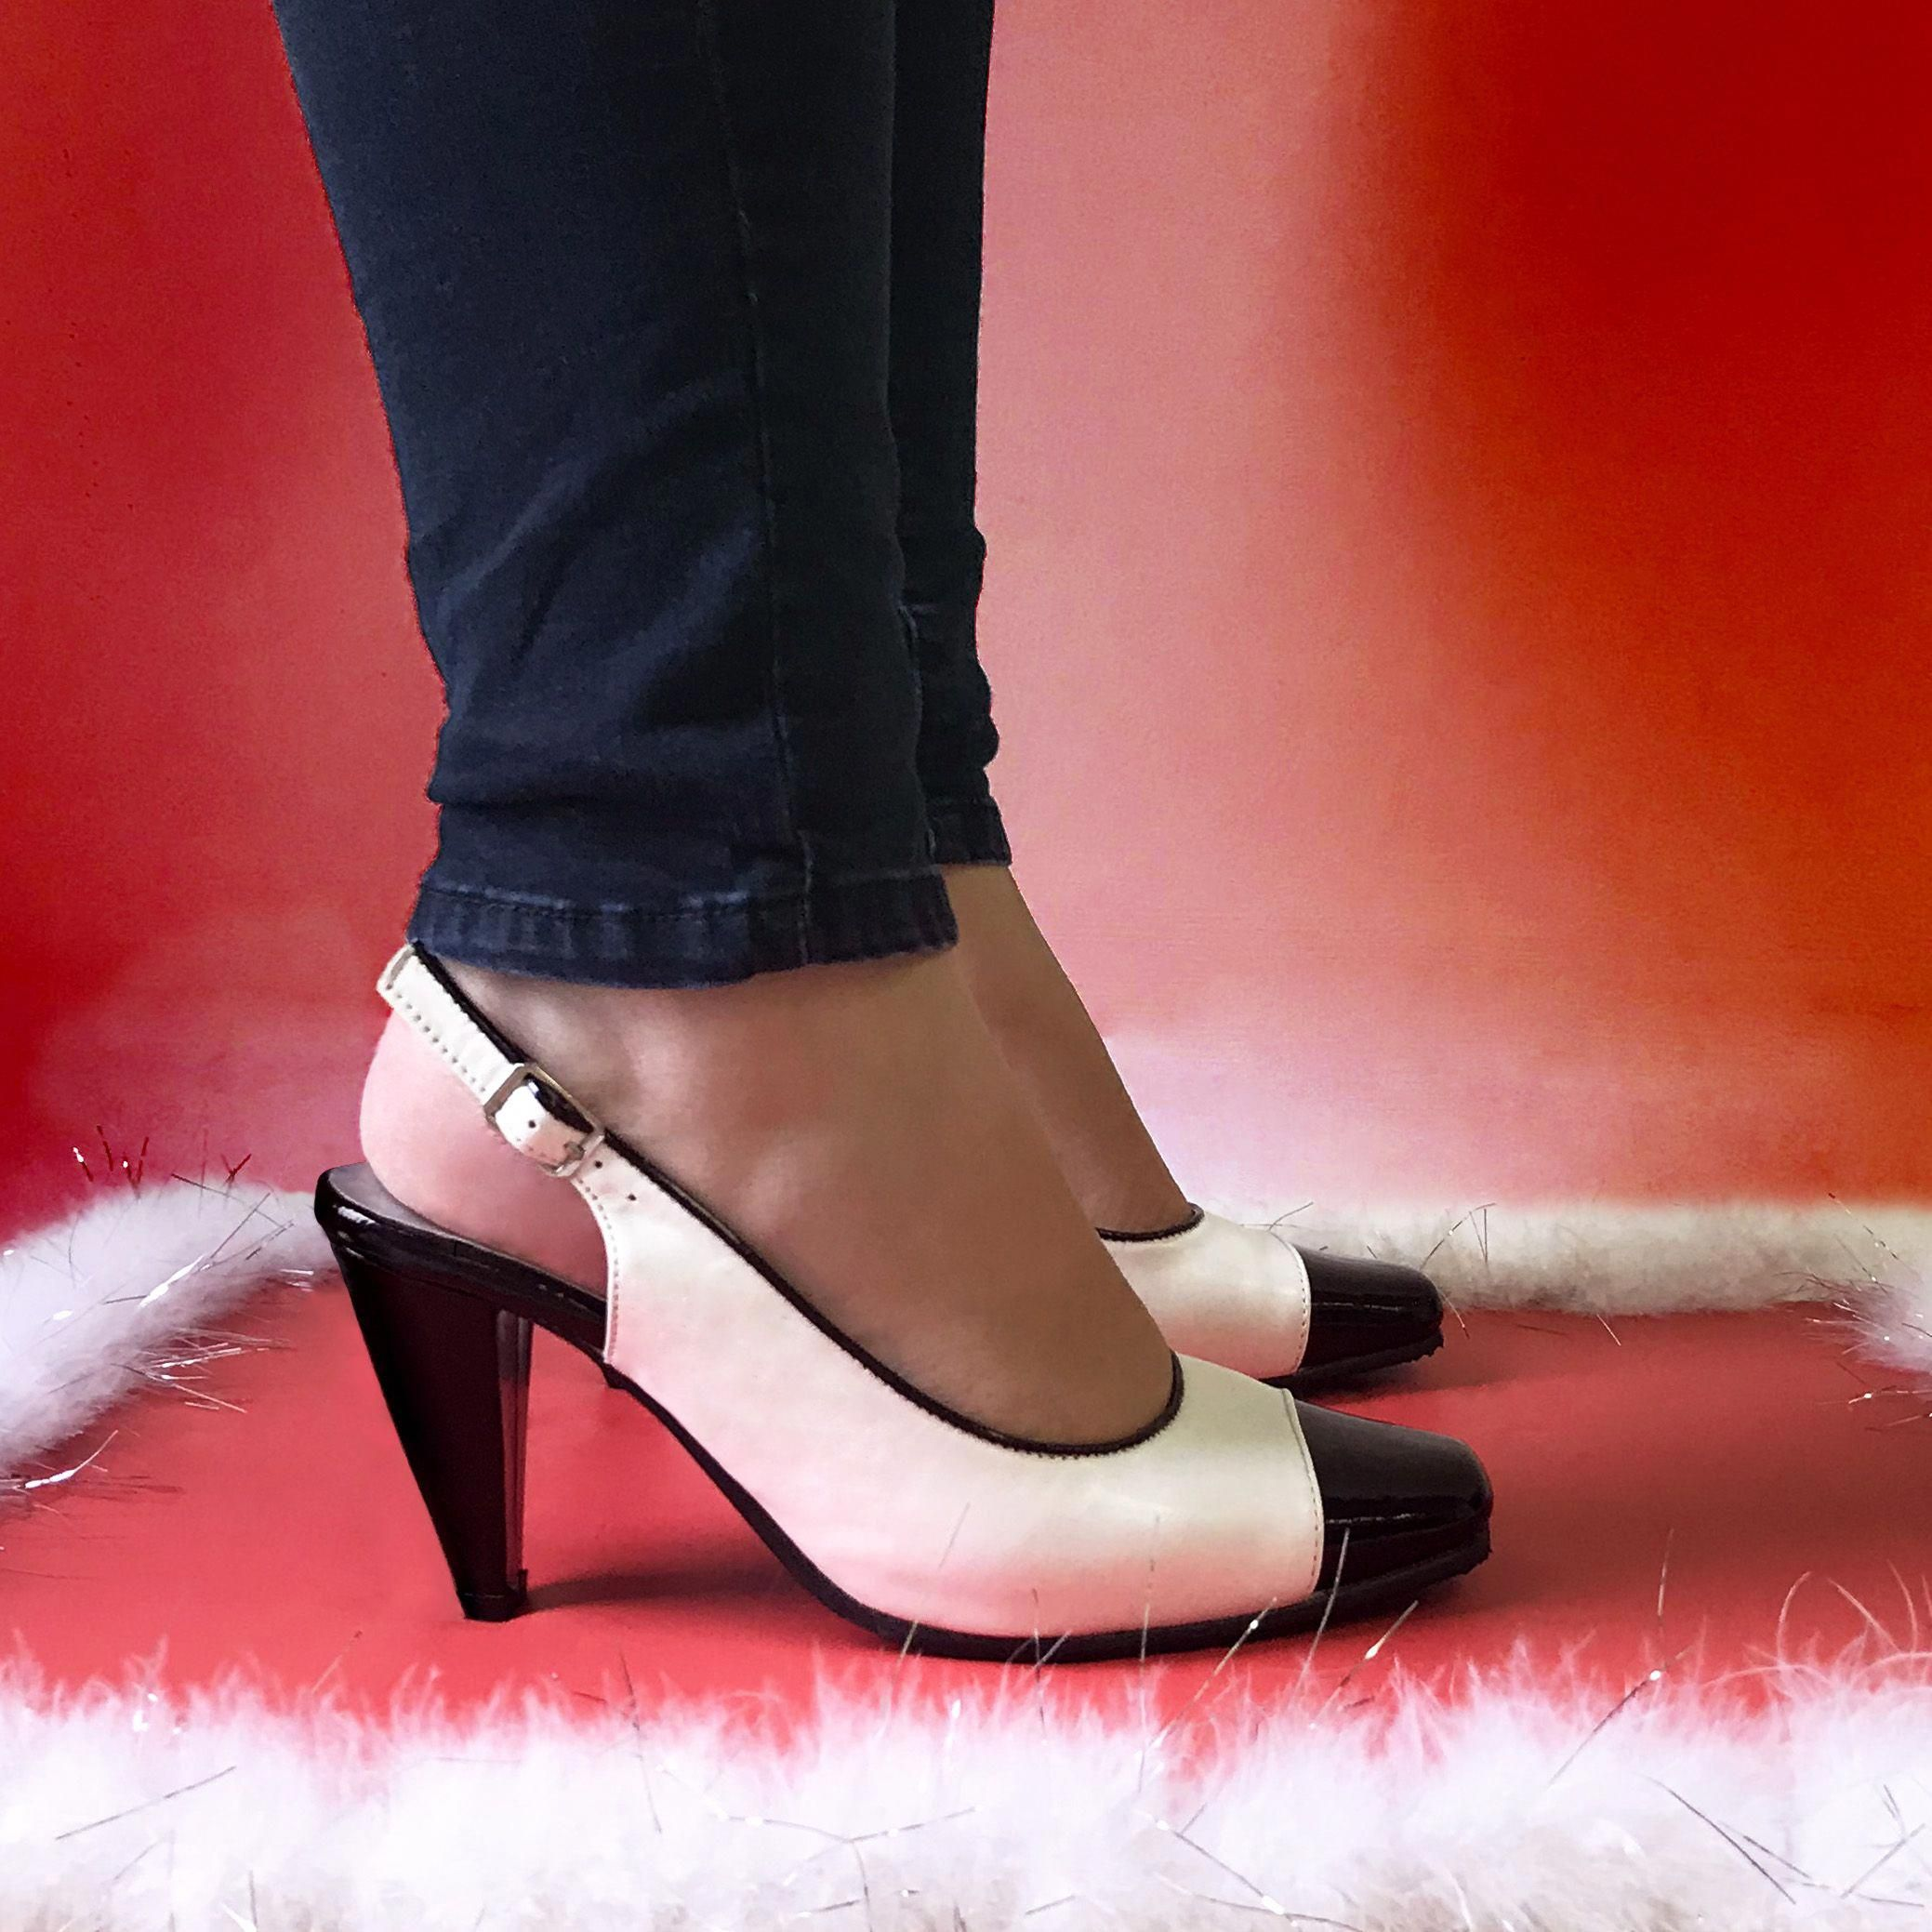 367167031c13 Talk about some red-hot heels! 🔥👠 Roxy by PEERAGE is a contrasting black  and white leather pump that is a great fall footwear choice!